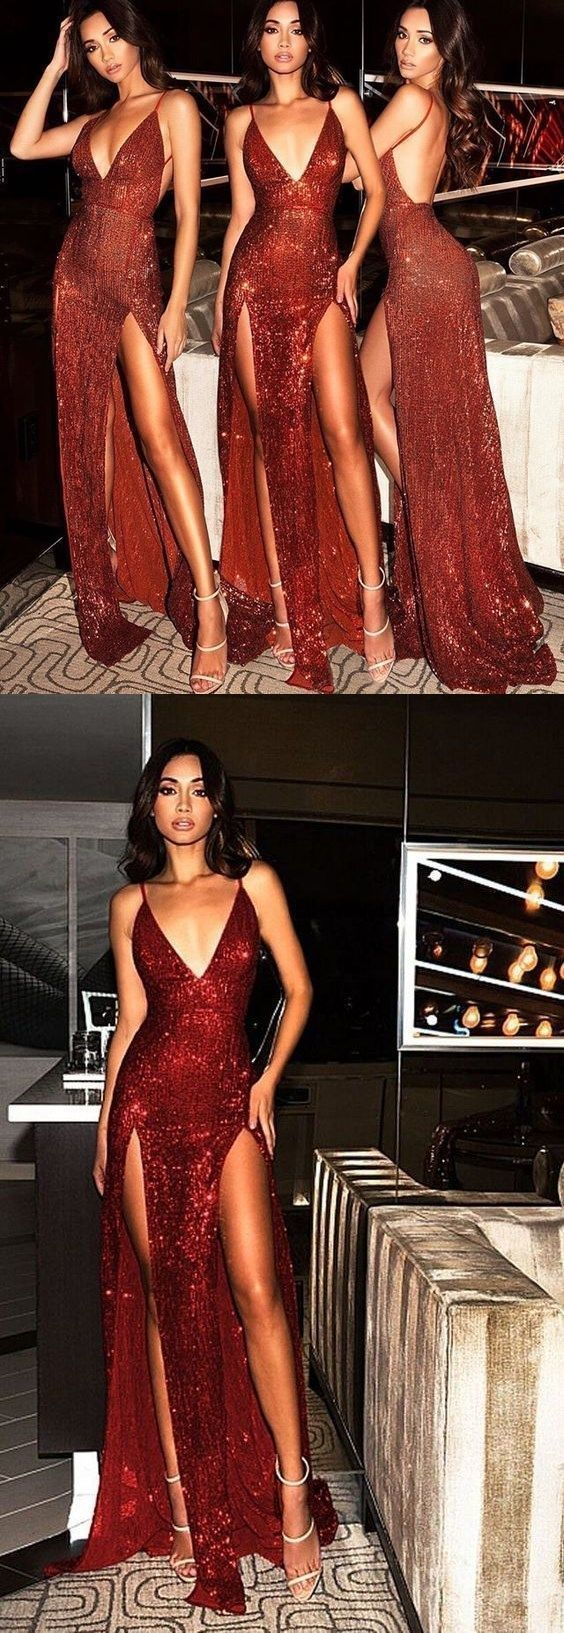 Sparkly prom dresses burgundy vneck long prom dress with slit sexy